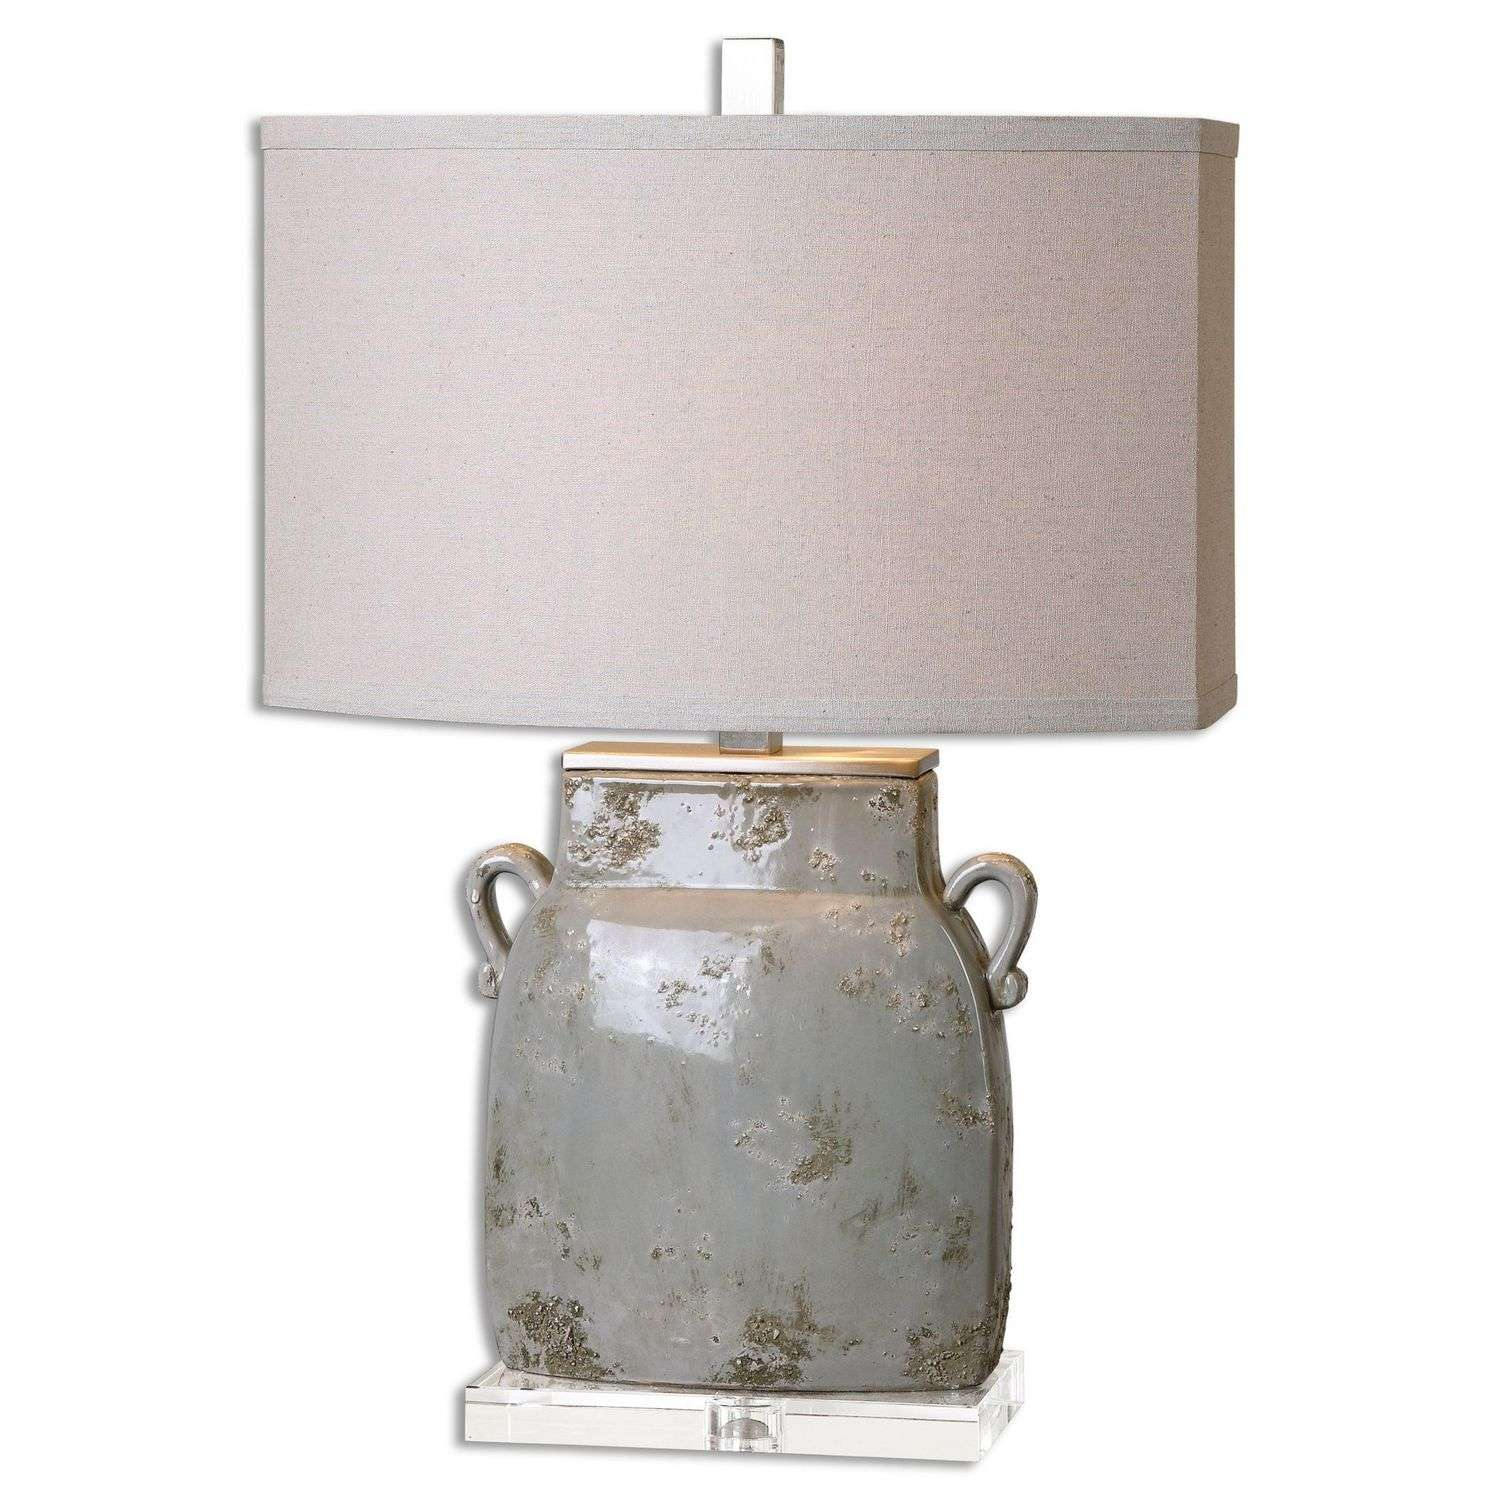 Uttermost Melizzano Table Lamp - Ivory/Gray